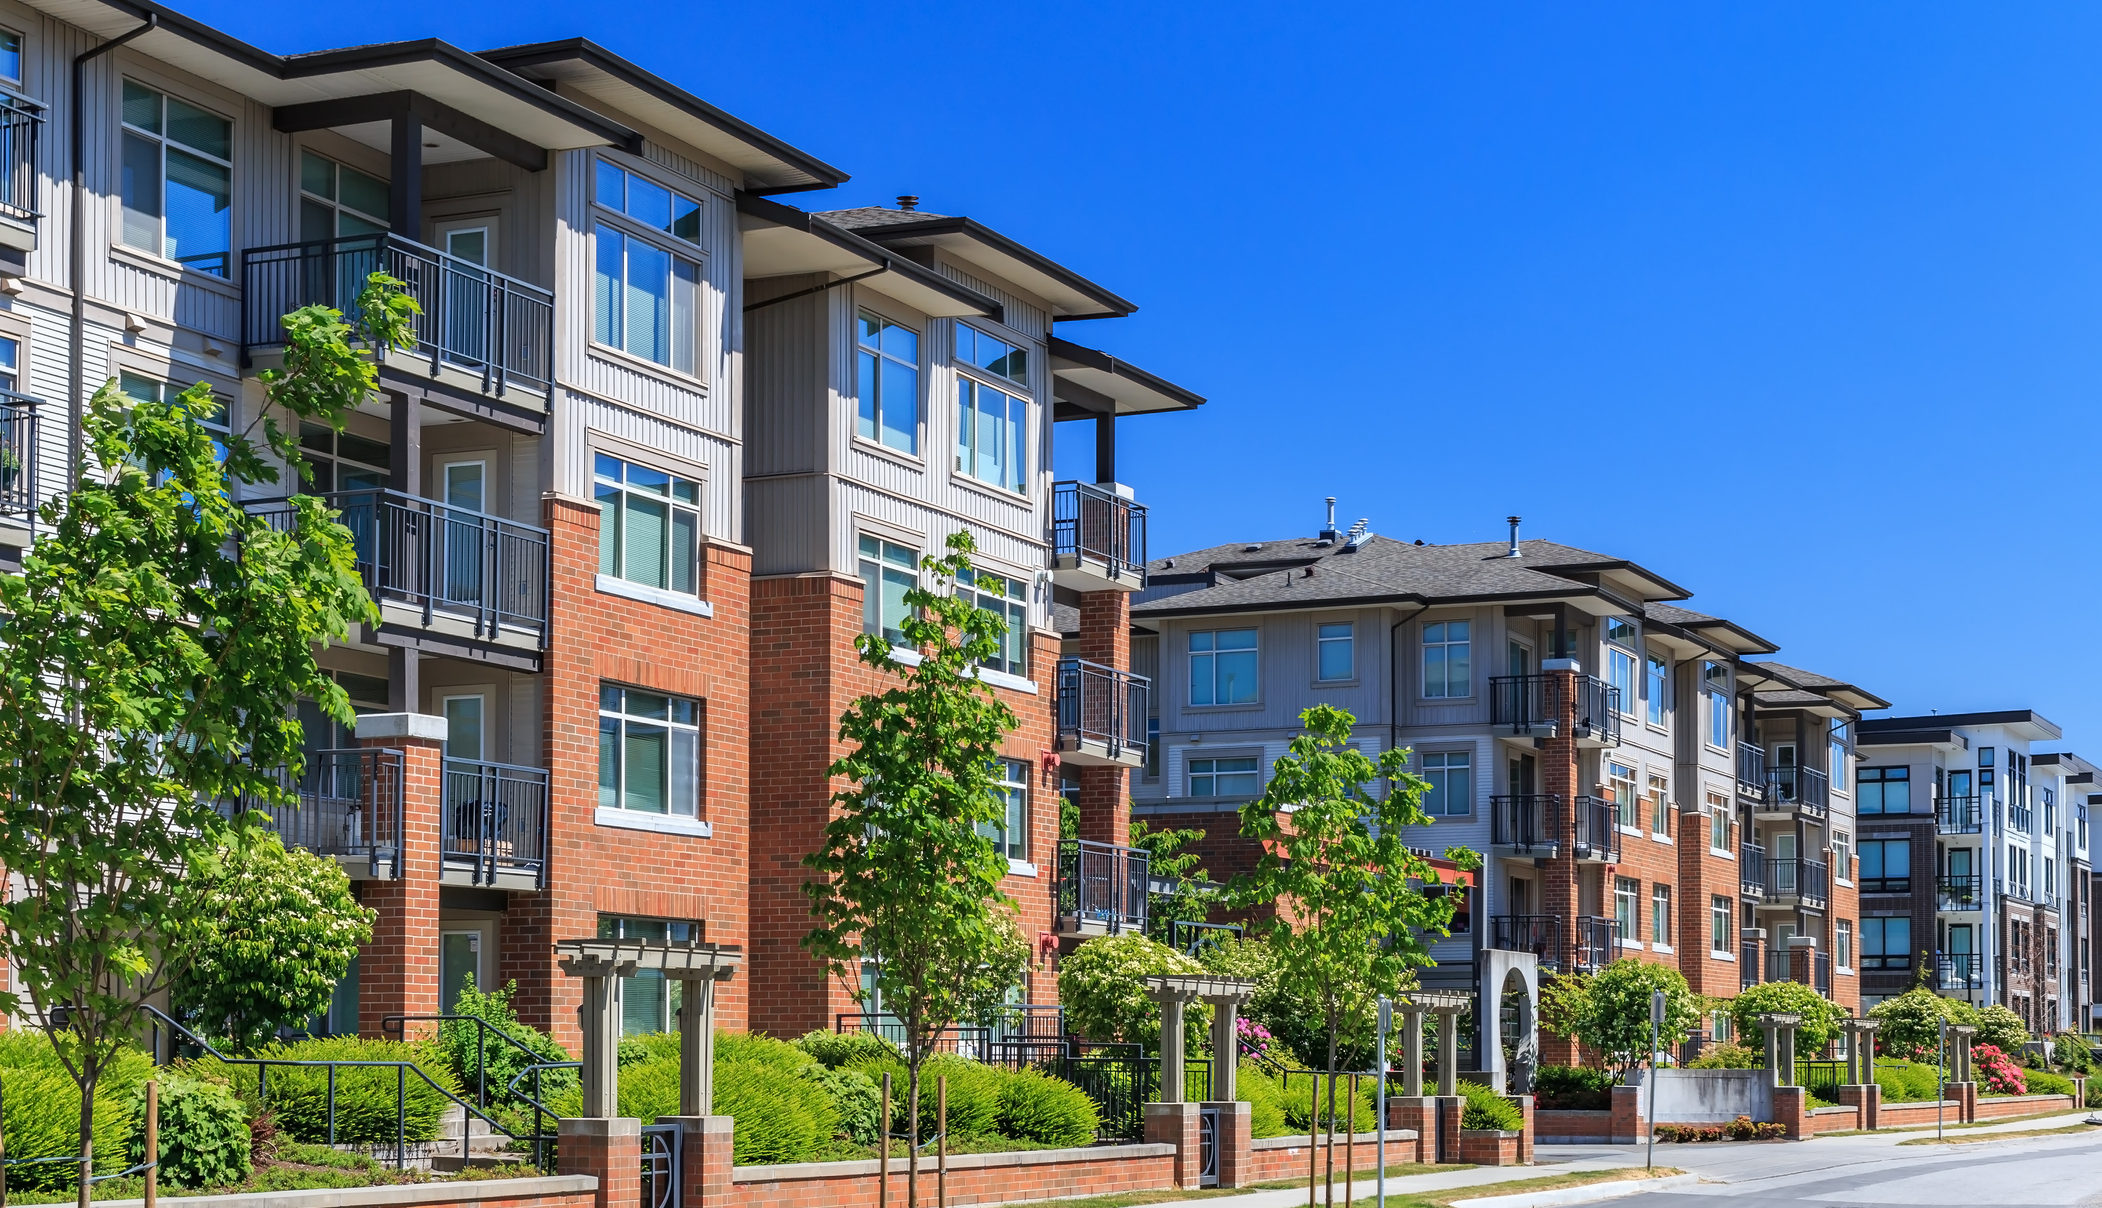 Commercial Real Estate Powder Springs